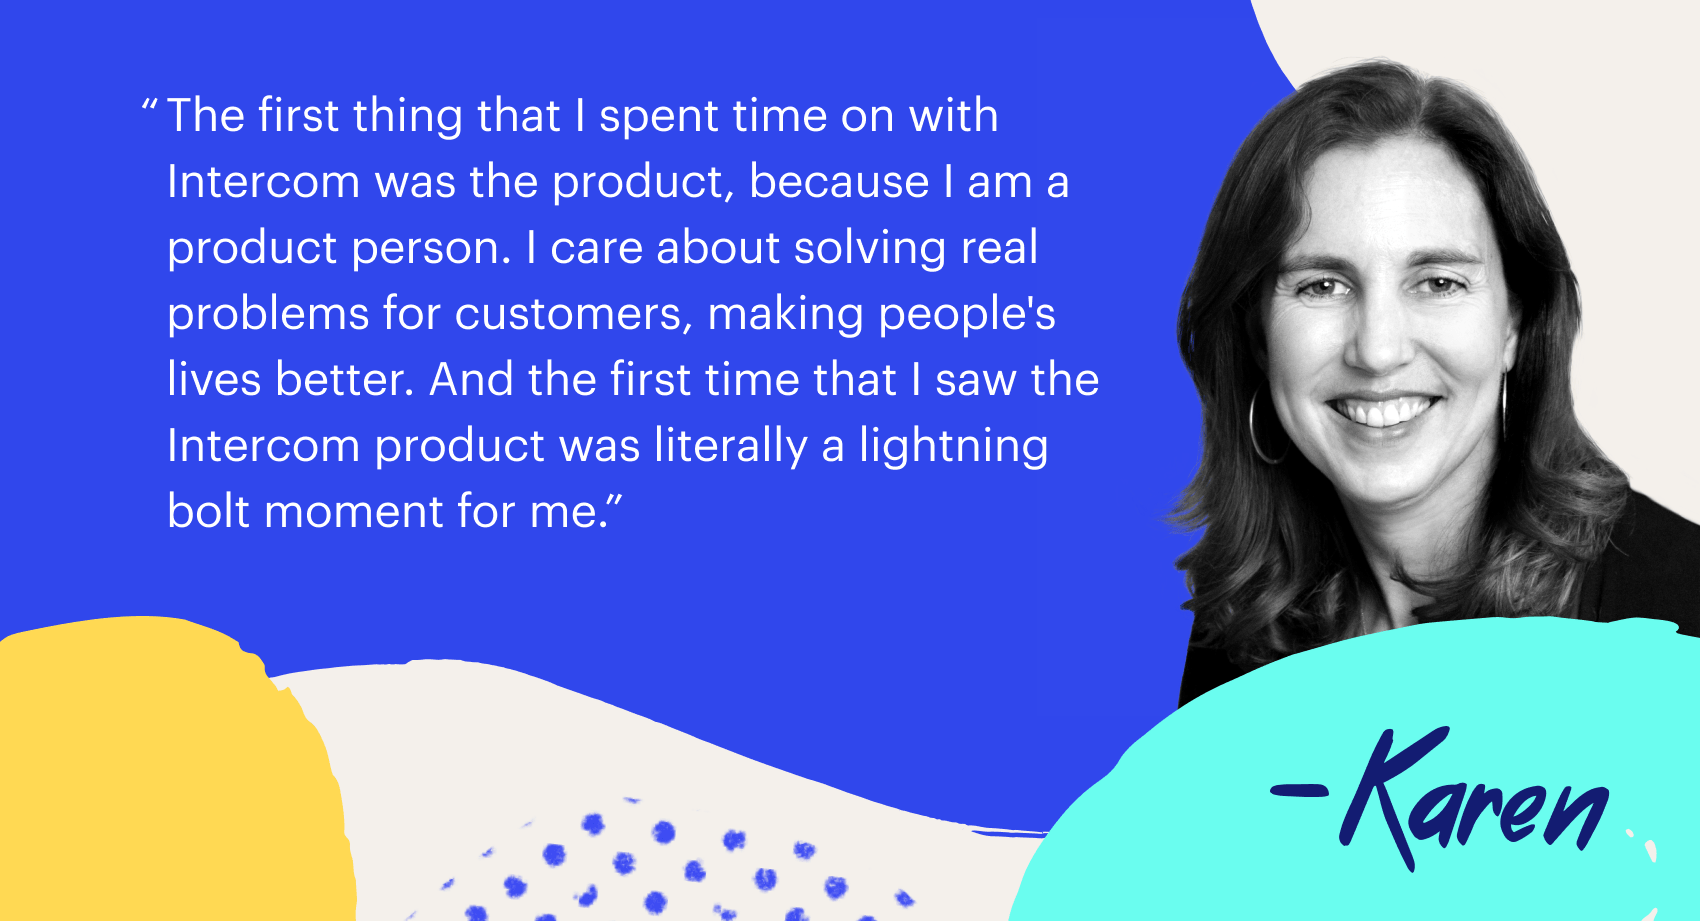 """The first time that I spent time with Intercom was the product, because I an a product person. I care about solving real problems for customer, making people's lives better. And the first time that I saw the Intercom product was literally a lightning bolt moment for me."""